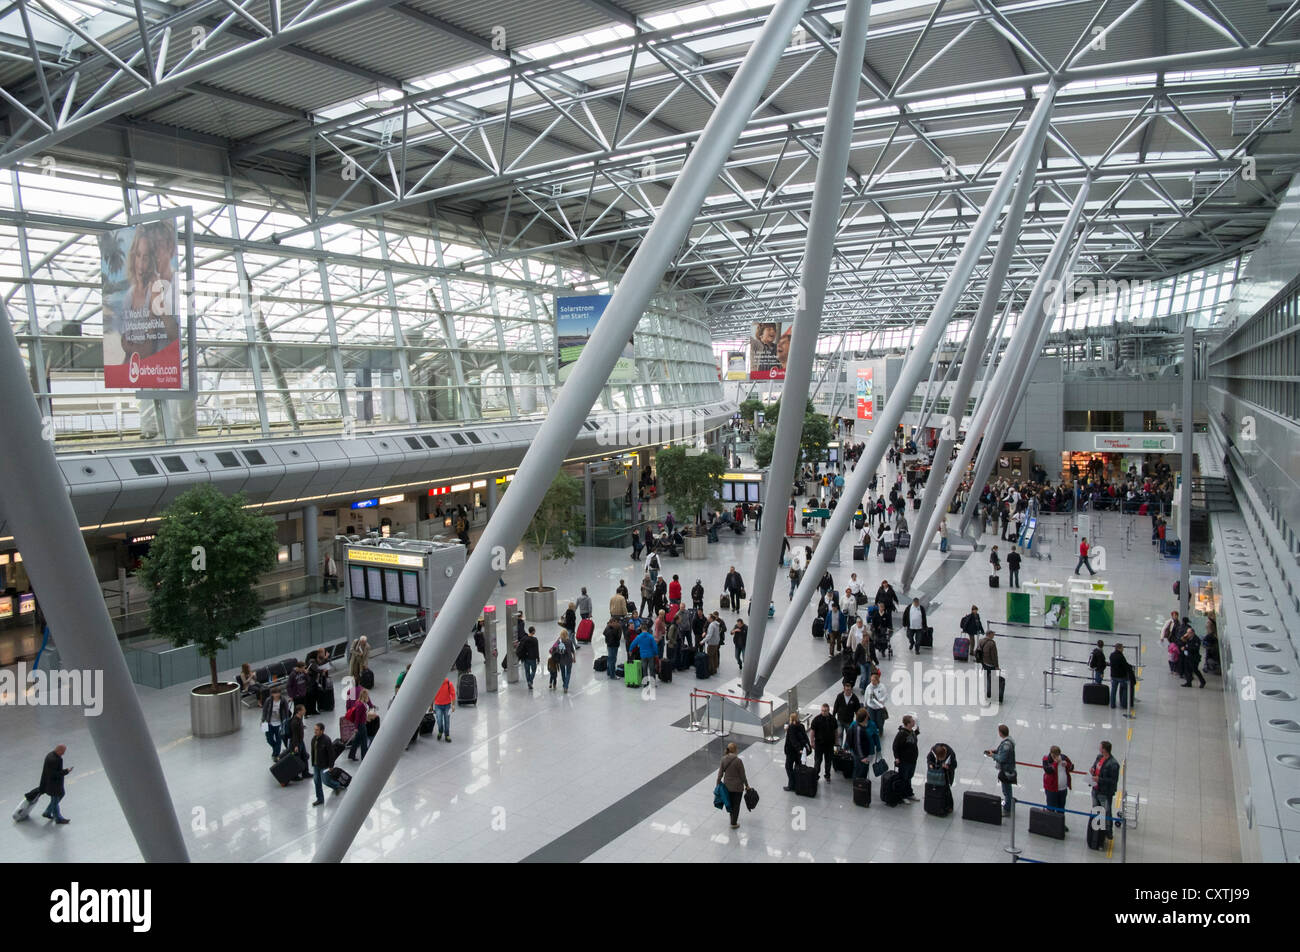 Interior of passenger Terminal building at Dusseldorf International airport in Germany - Stock Image